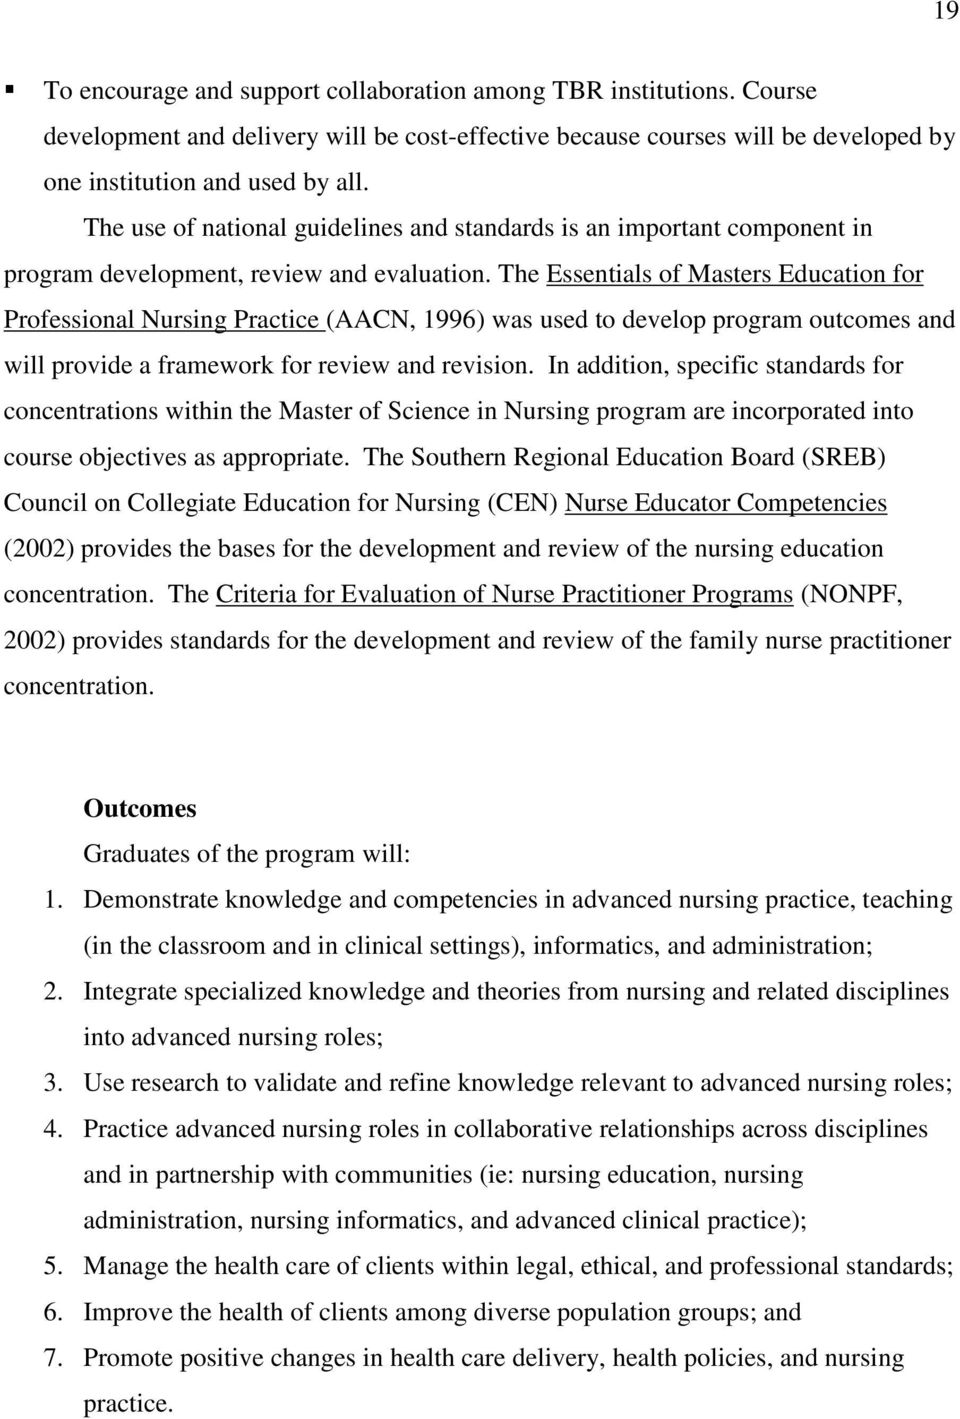 The Essentials of Masters Education for Professional Nursing Practice (AACN, 1996) was used to develop program outcomes and will provide a framework for review and revision.